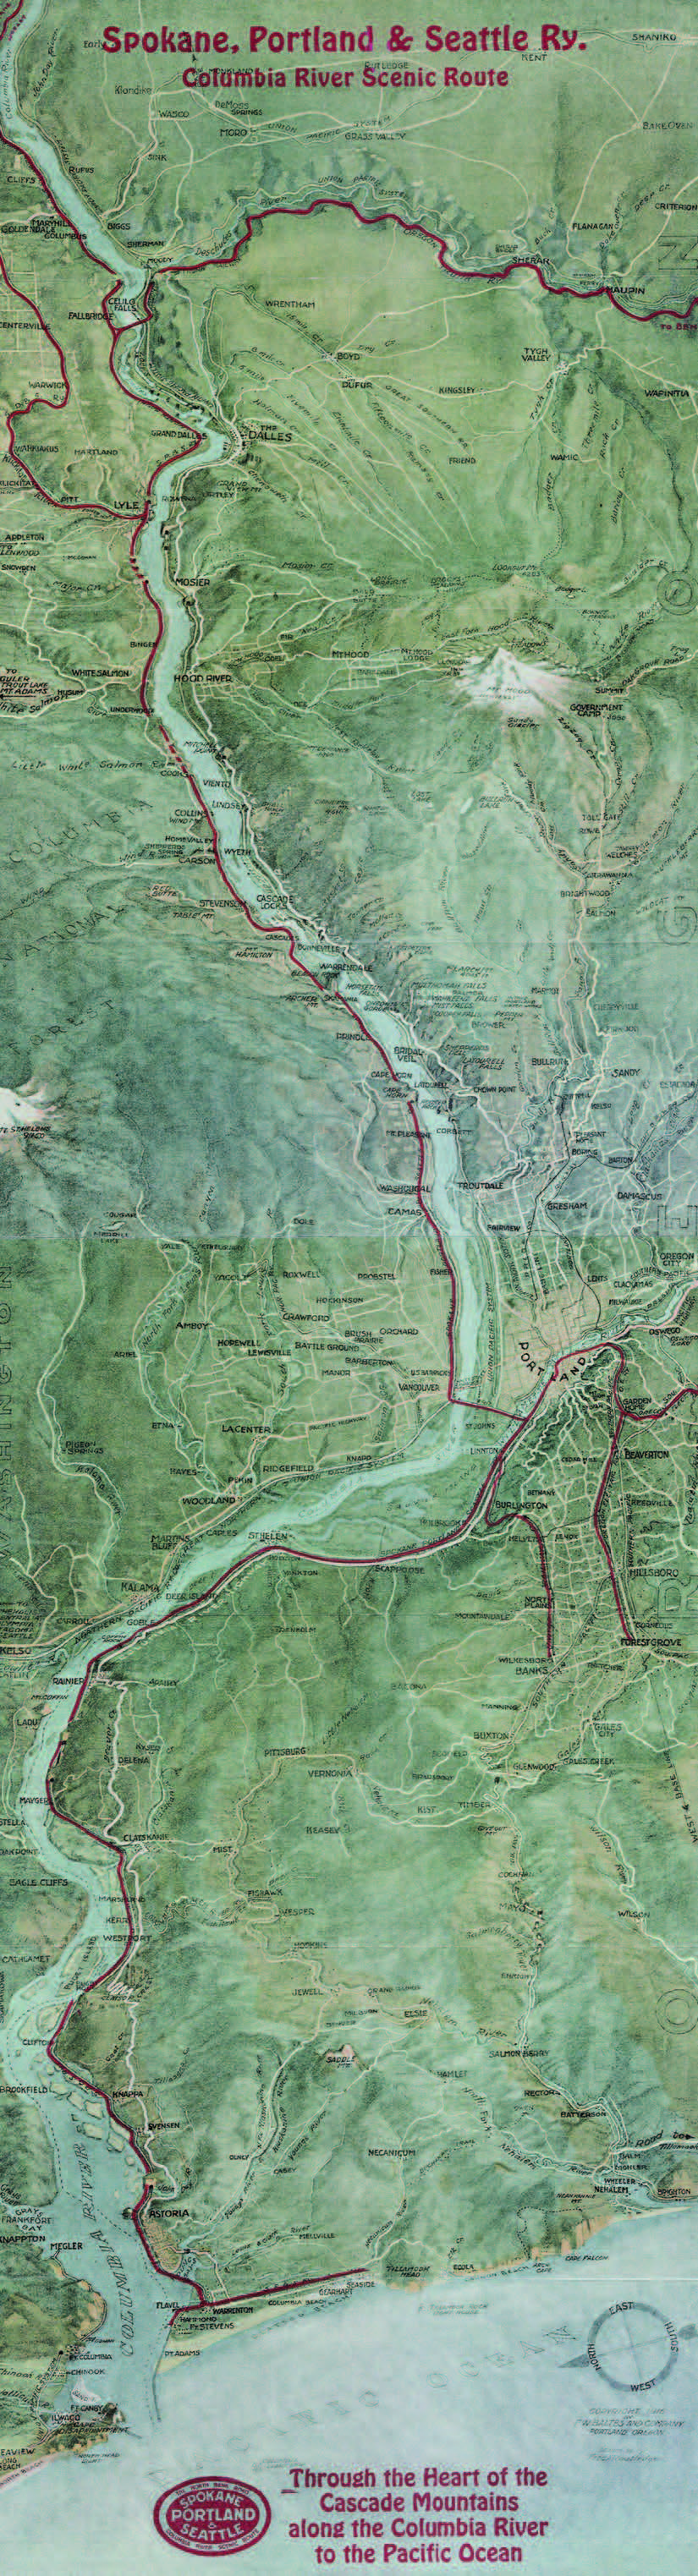 Spokane, Portland, and Seattle Railway map. OHS Research Library